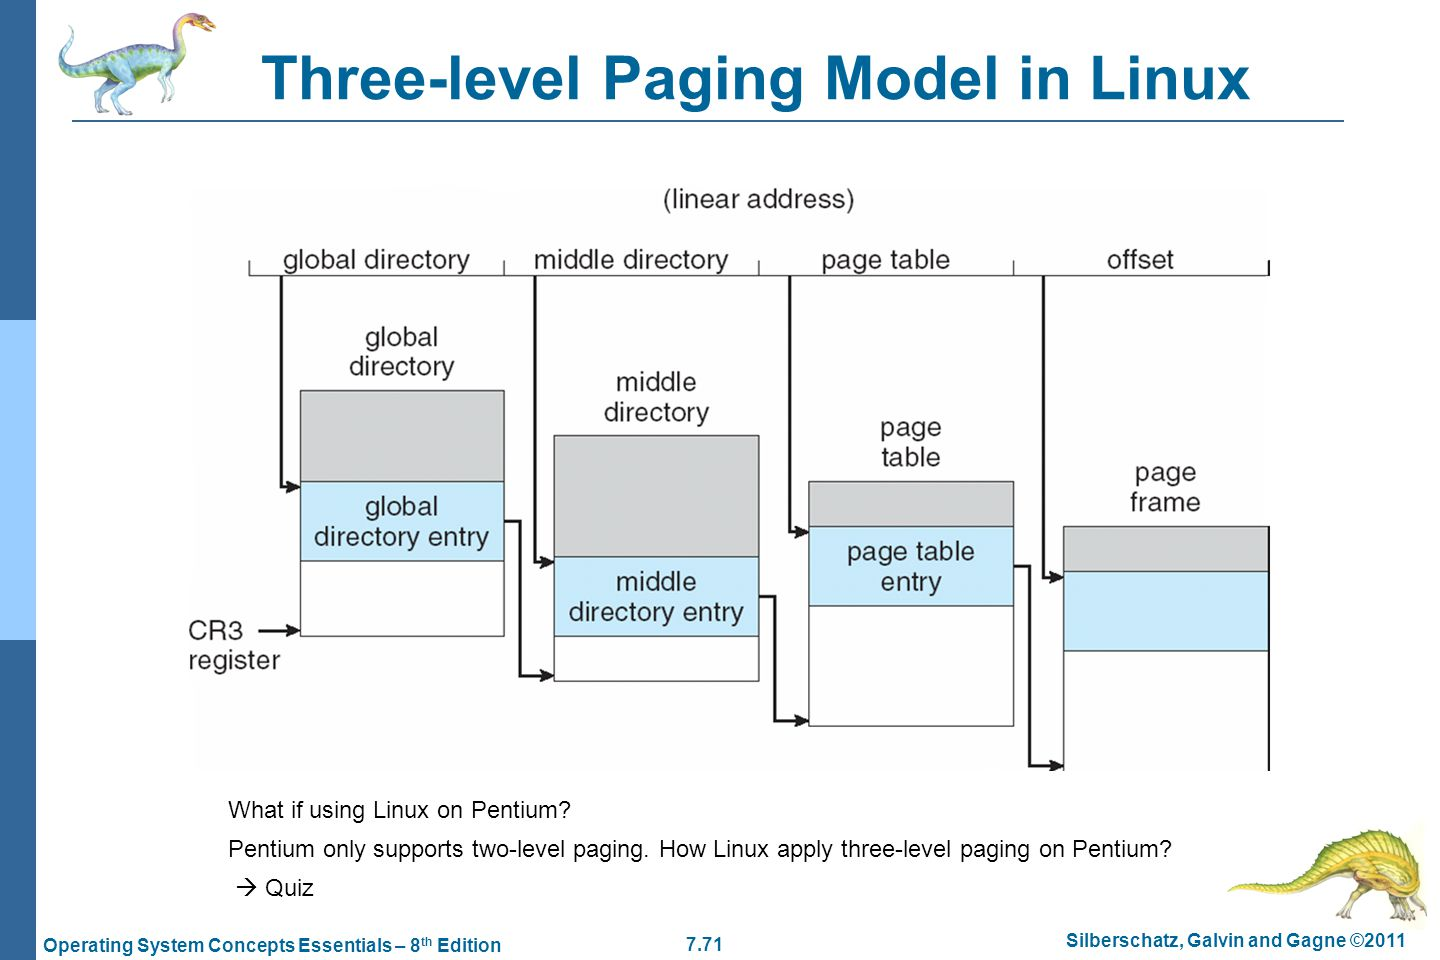 Three-level Paging Model in Linux